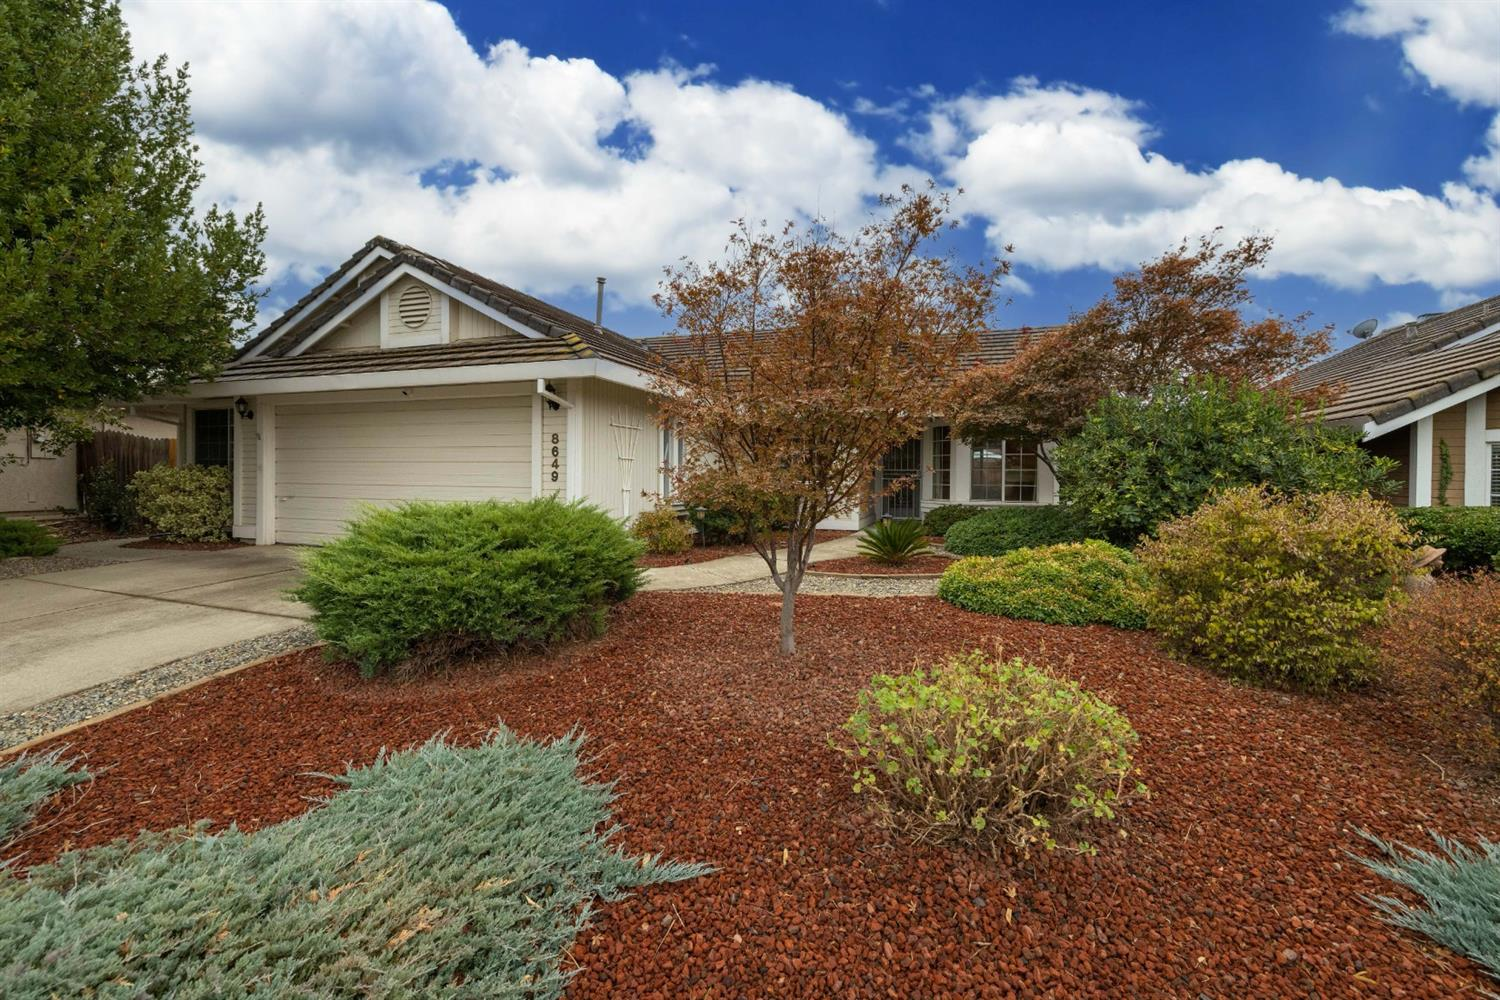 This charming, one-story home is nestled in a desirable Antelope neighborhood and is move-in ready!